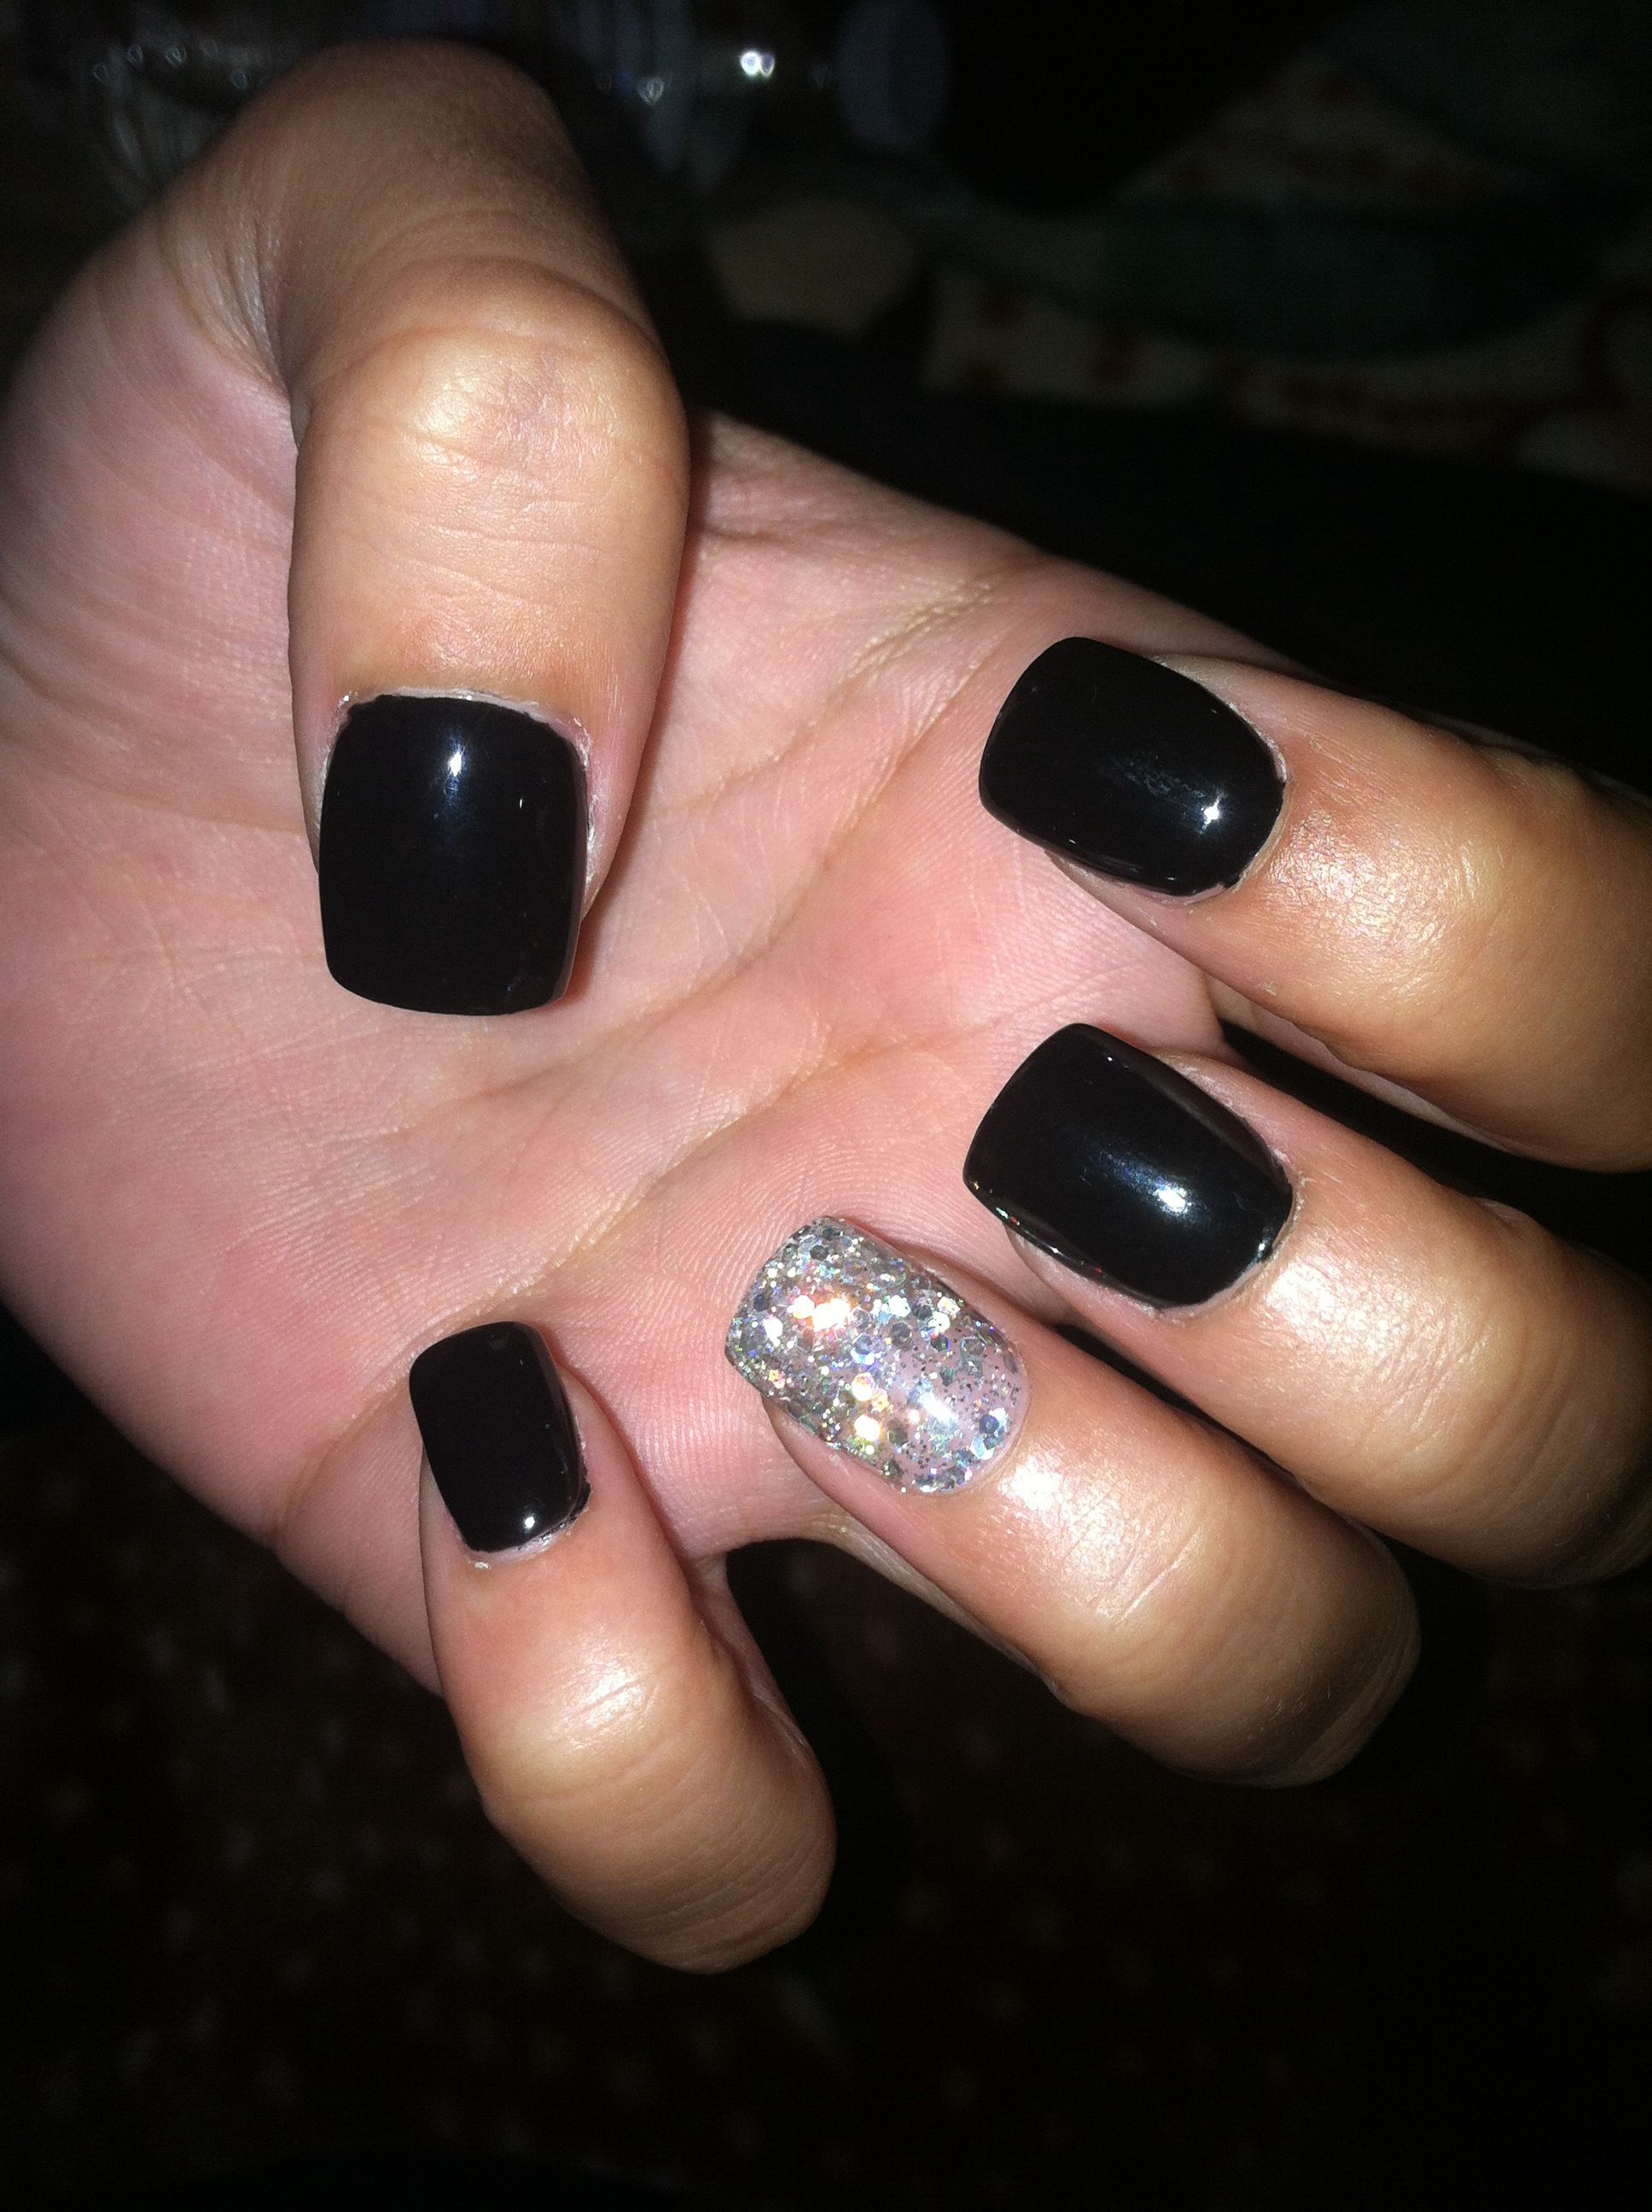 Black Gel Nails With One Silver Glitter Nail